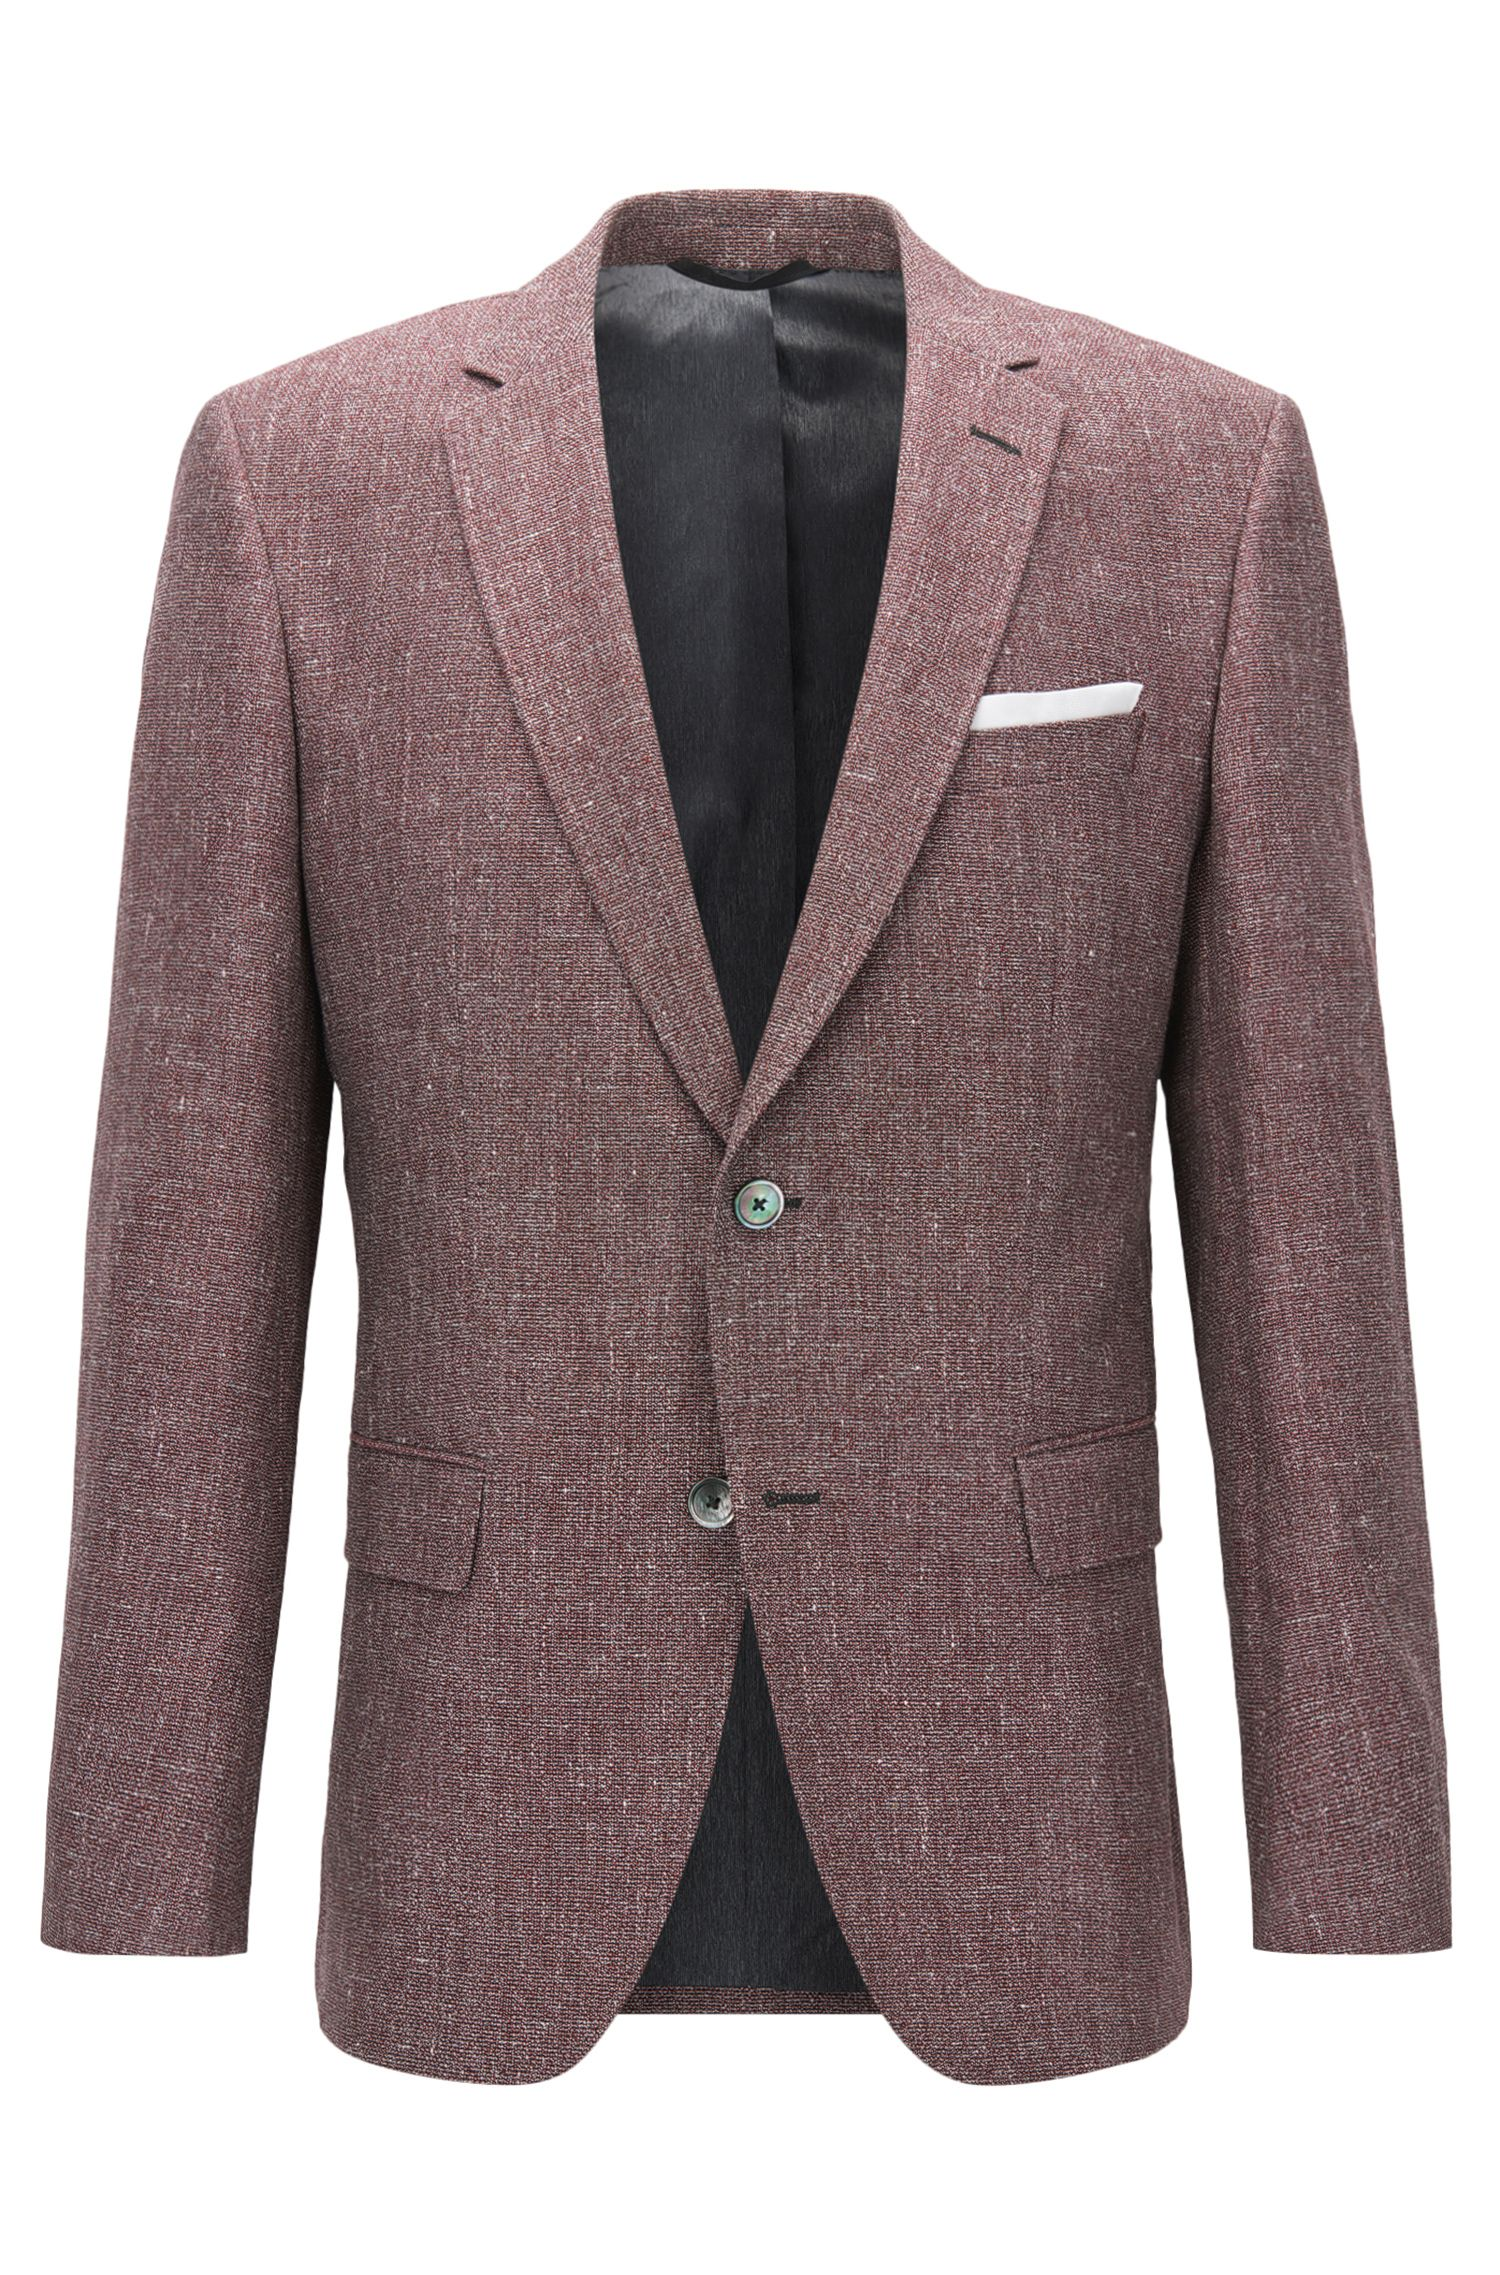 Melange Cotton-Linen Sport Coat, Slim Fit | Hutsons